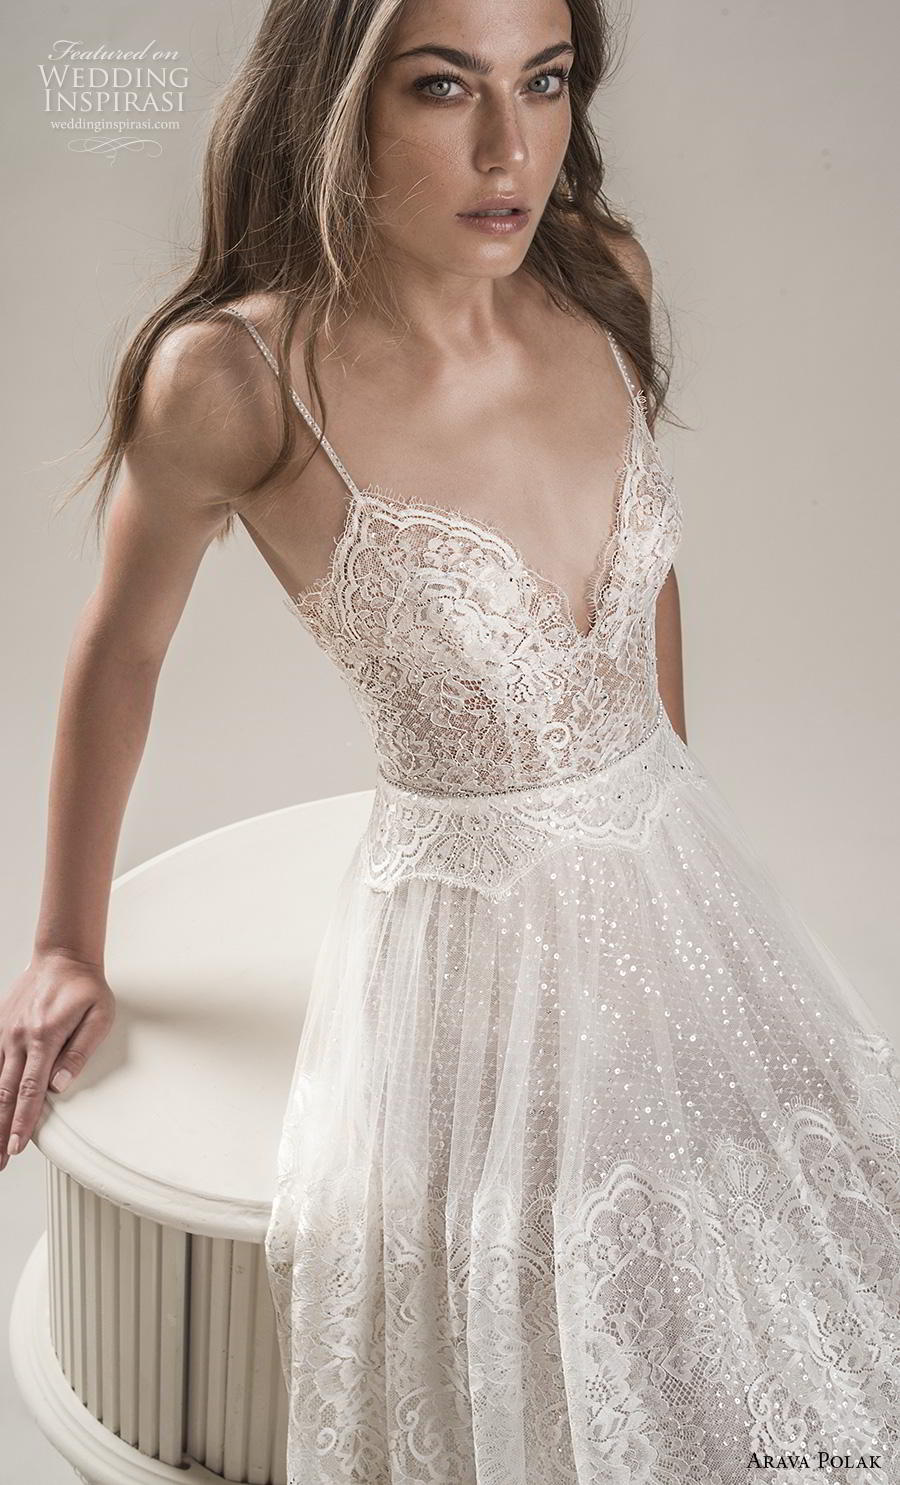 arava polak 2019 bridal sleeveless spaghetti strap deep sweetheart neckline full embellishment romantic bohemian soft a  line wedding dress backless low scoop back sweep train (6) zv